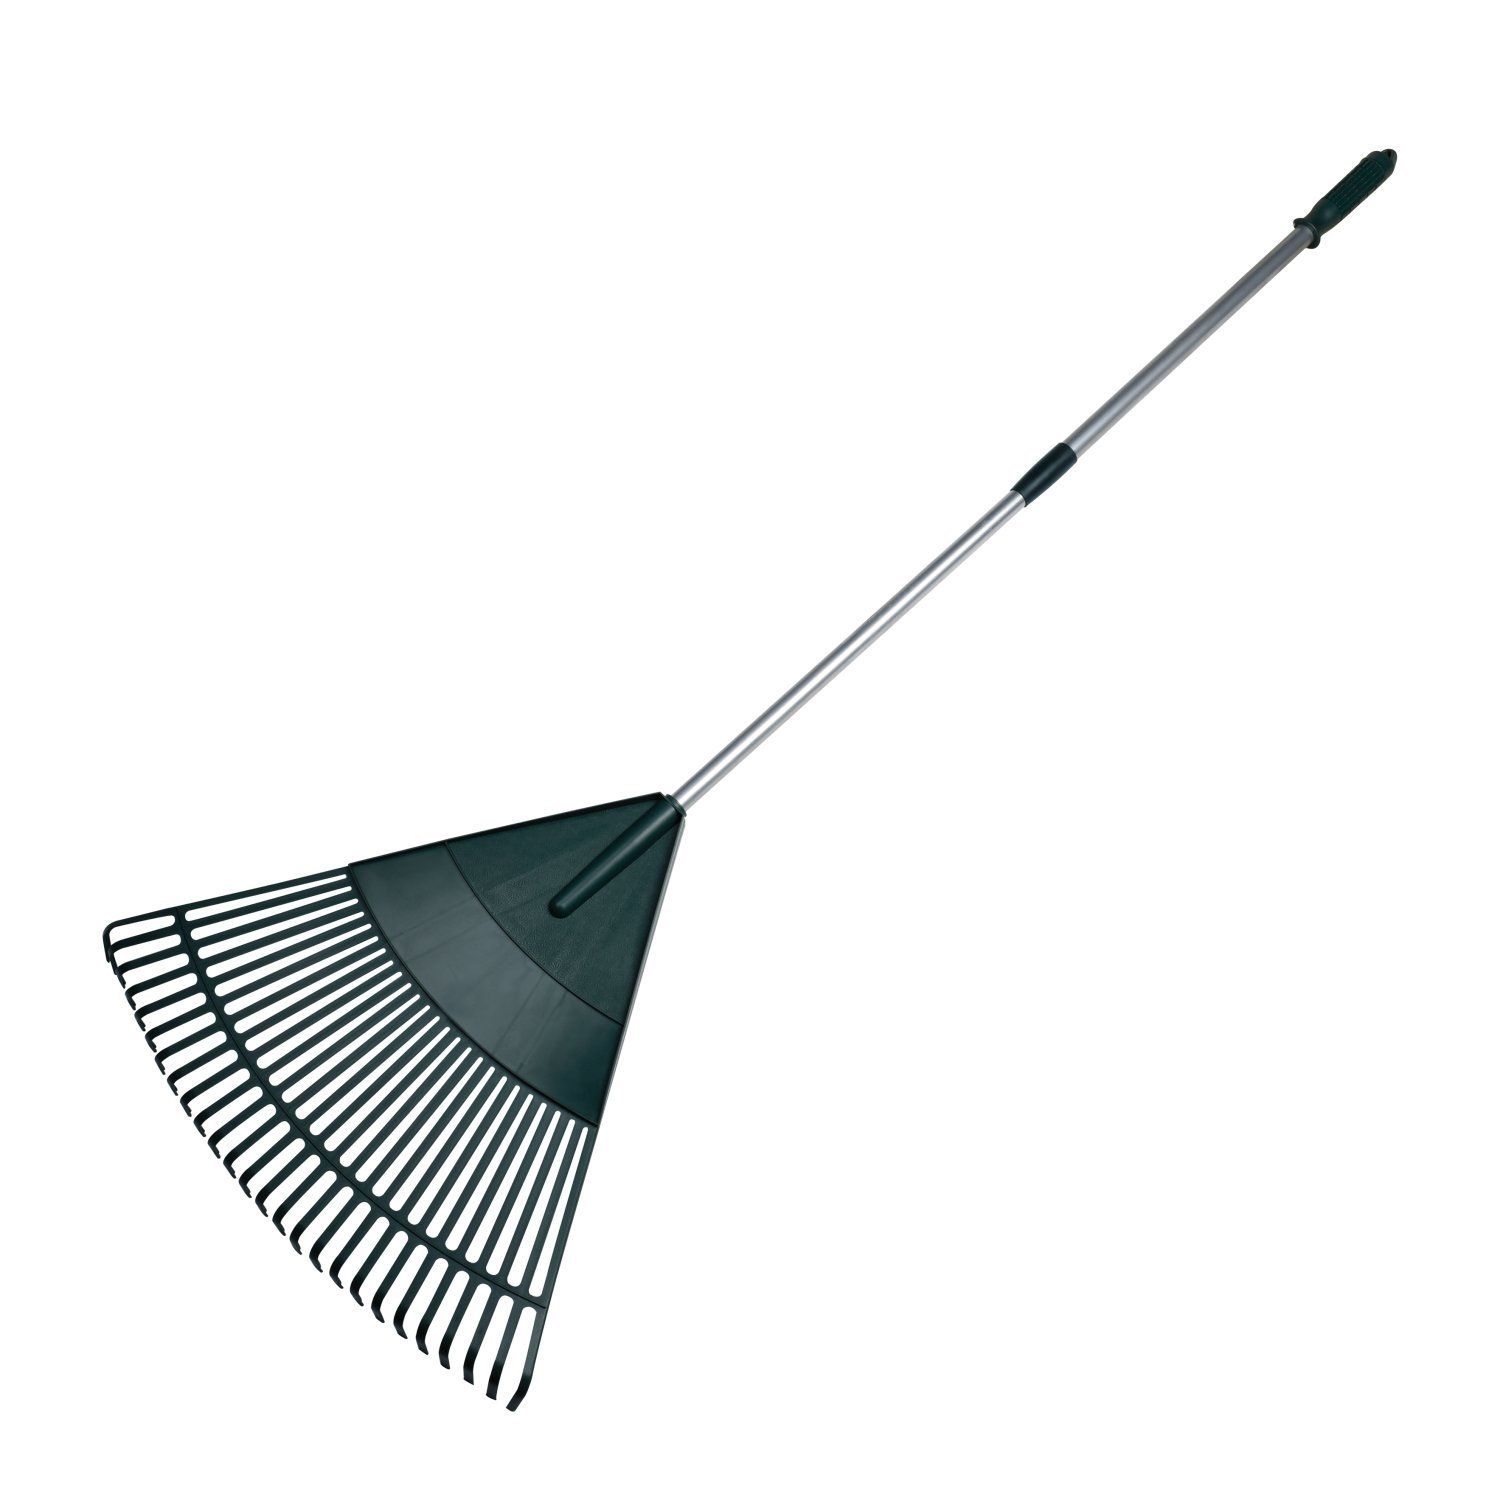 ORIENTOOLS Garden Leaf Rake, Adjustable Lightweight Steel Handle, Comfortable Grip Handle, Plastic Head,Poly Shrub Rake,26 Tines,43 to 66 inches